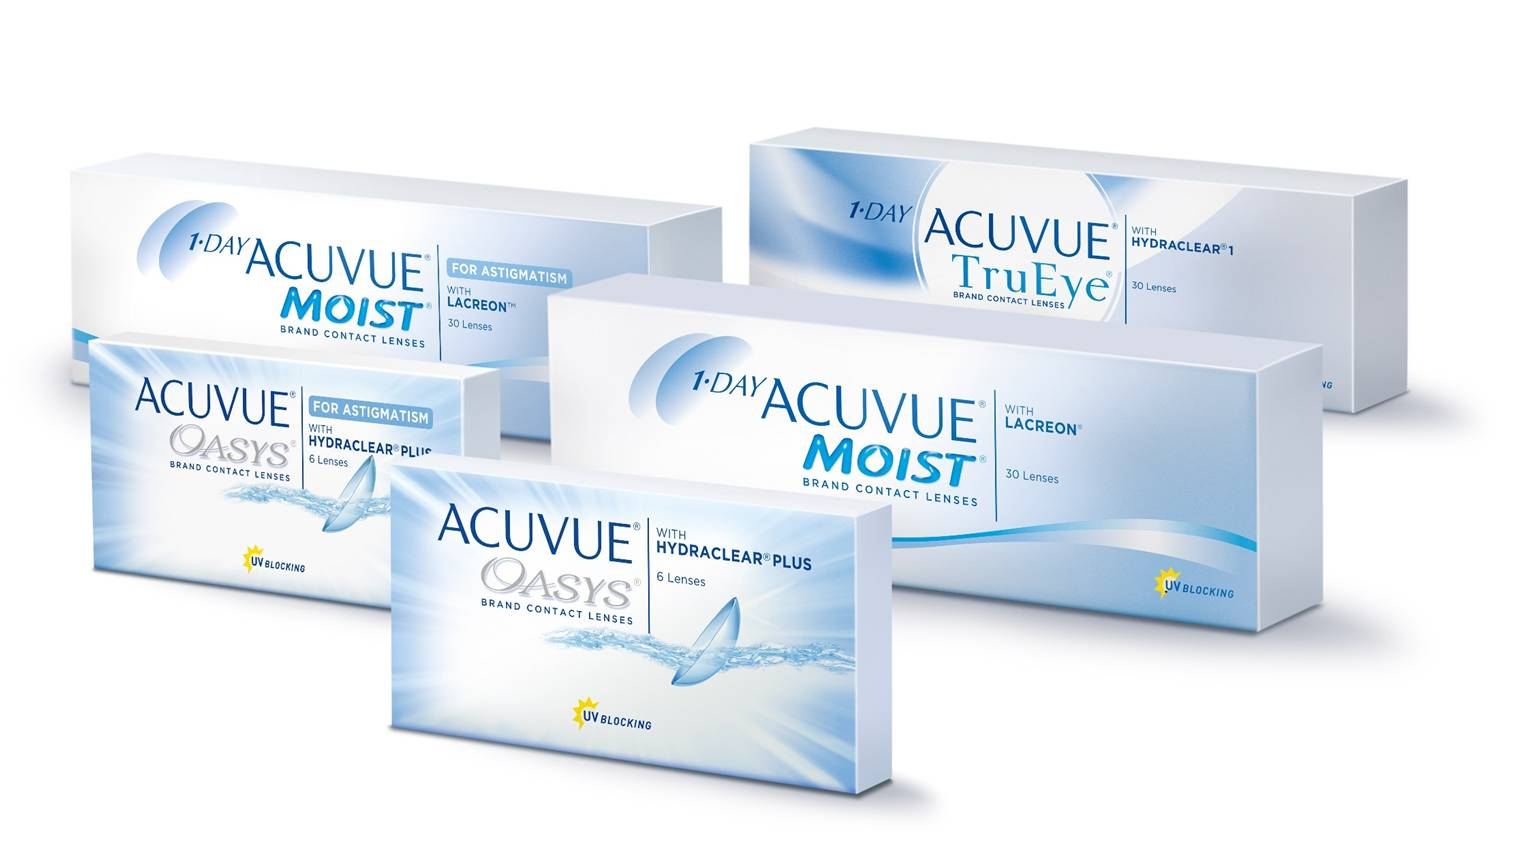 Acuvue family